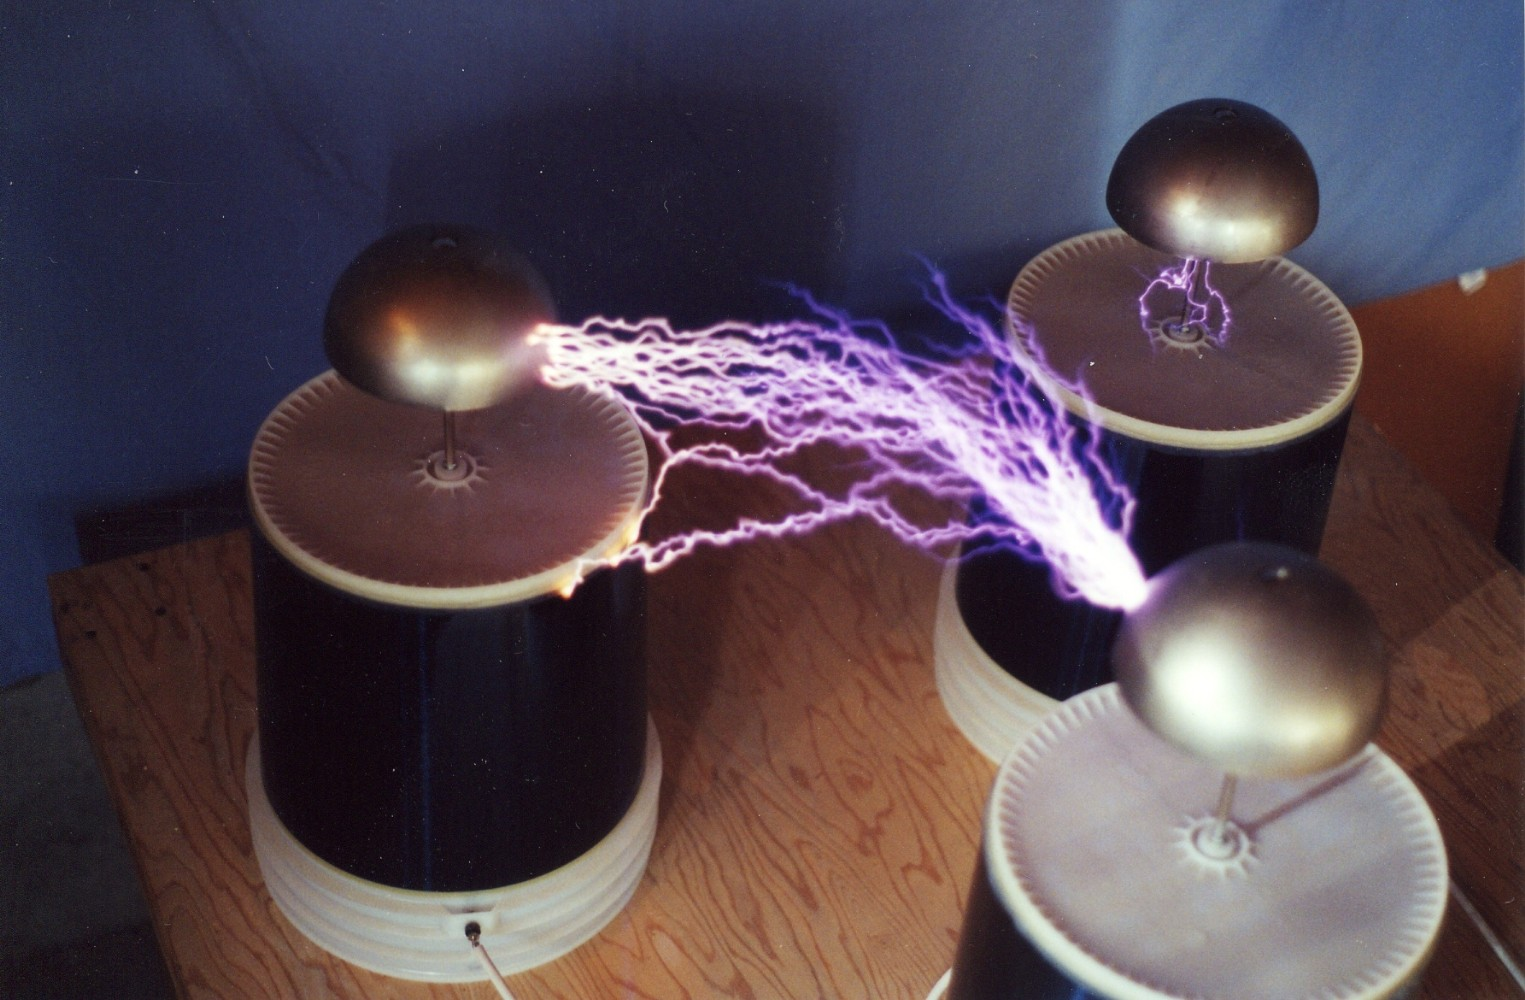 2000 3-phase Tesla coil system with 60 Hz half-wave rectified power - 1